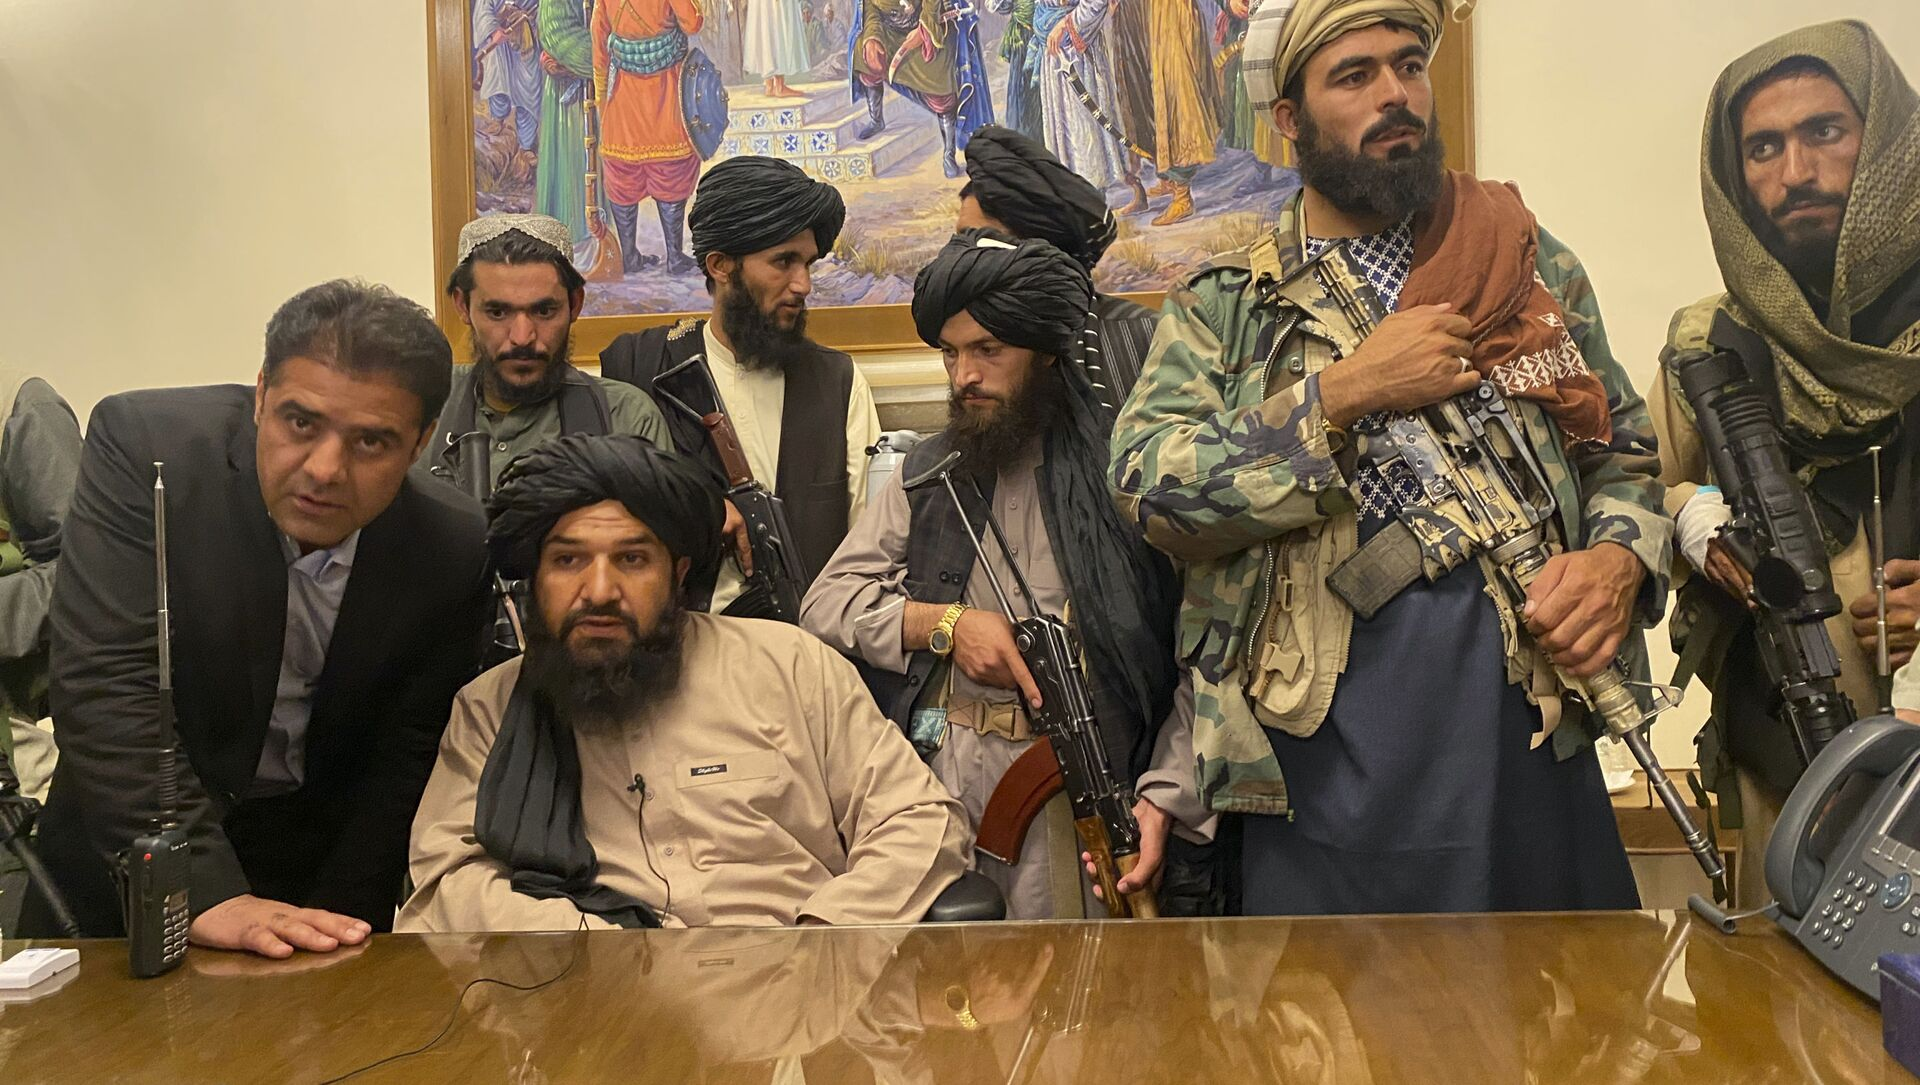 Taliban fighters take control of Afghan presidential palace after the Afghan President Ashraf Ghani fled the country, in Kabul, Afghanistan, Sunday, Aug. 15, 2021. - Sputnik International, 1920, 18.08.2021